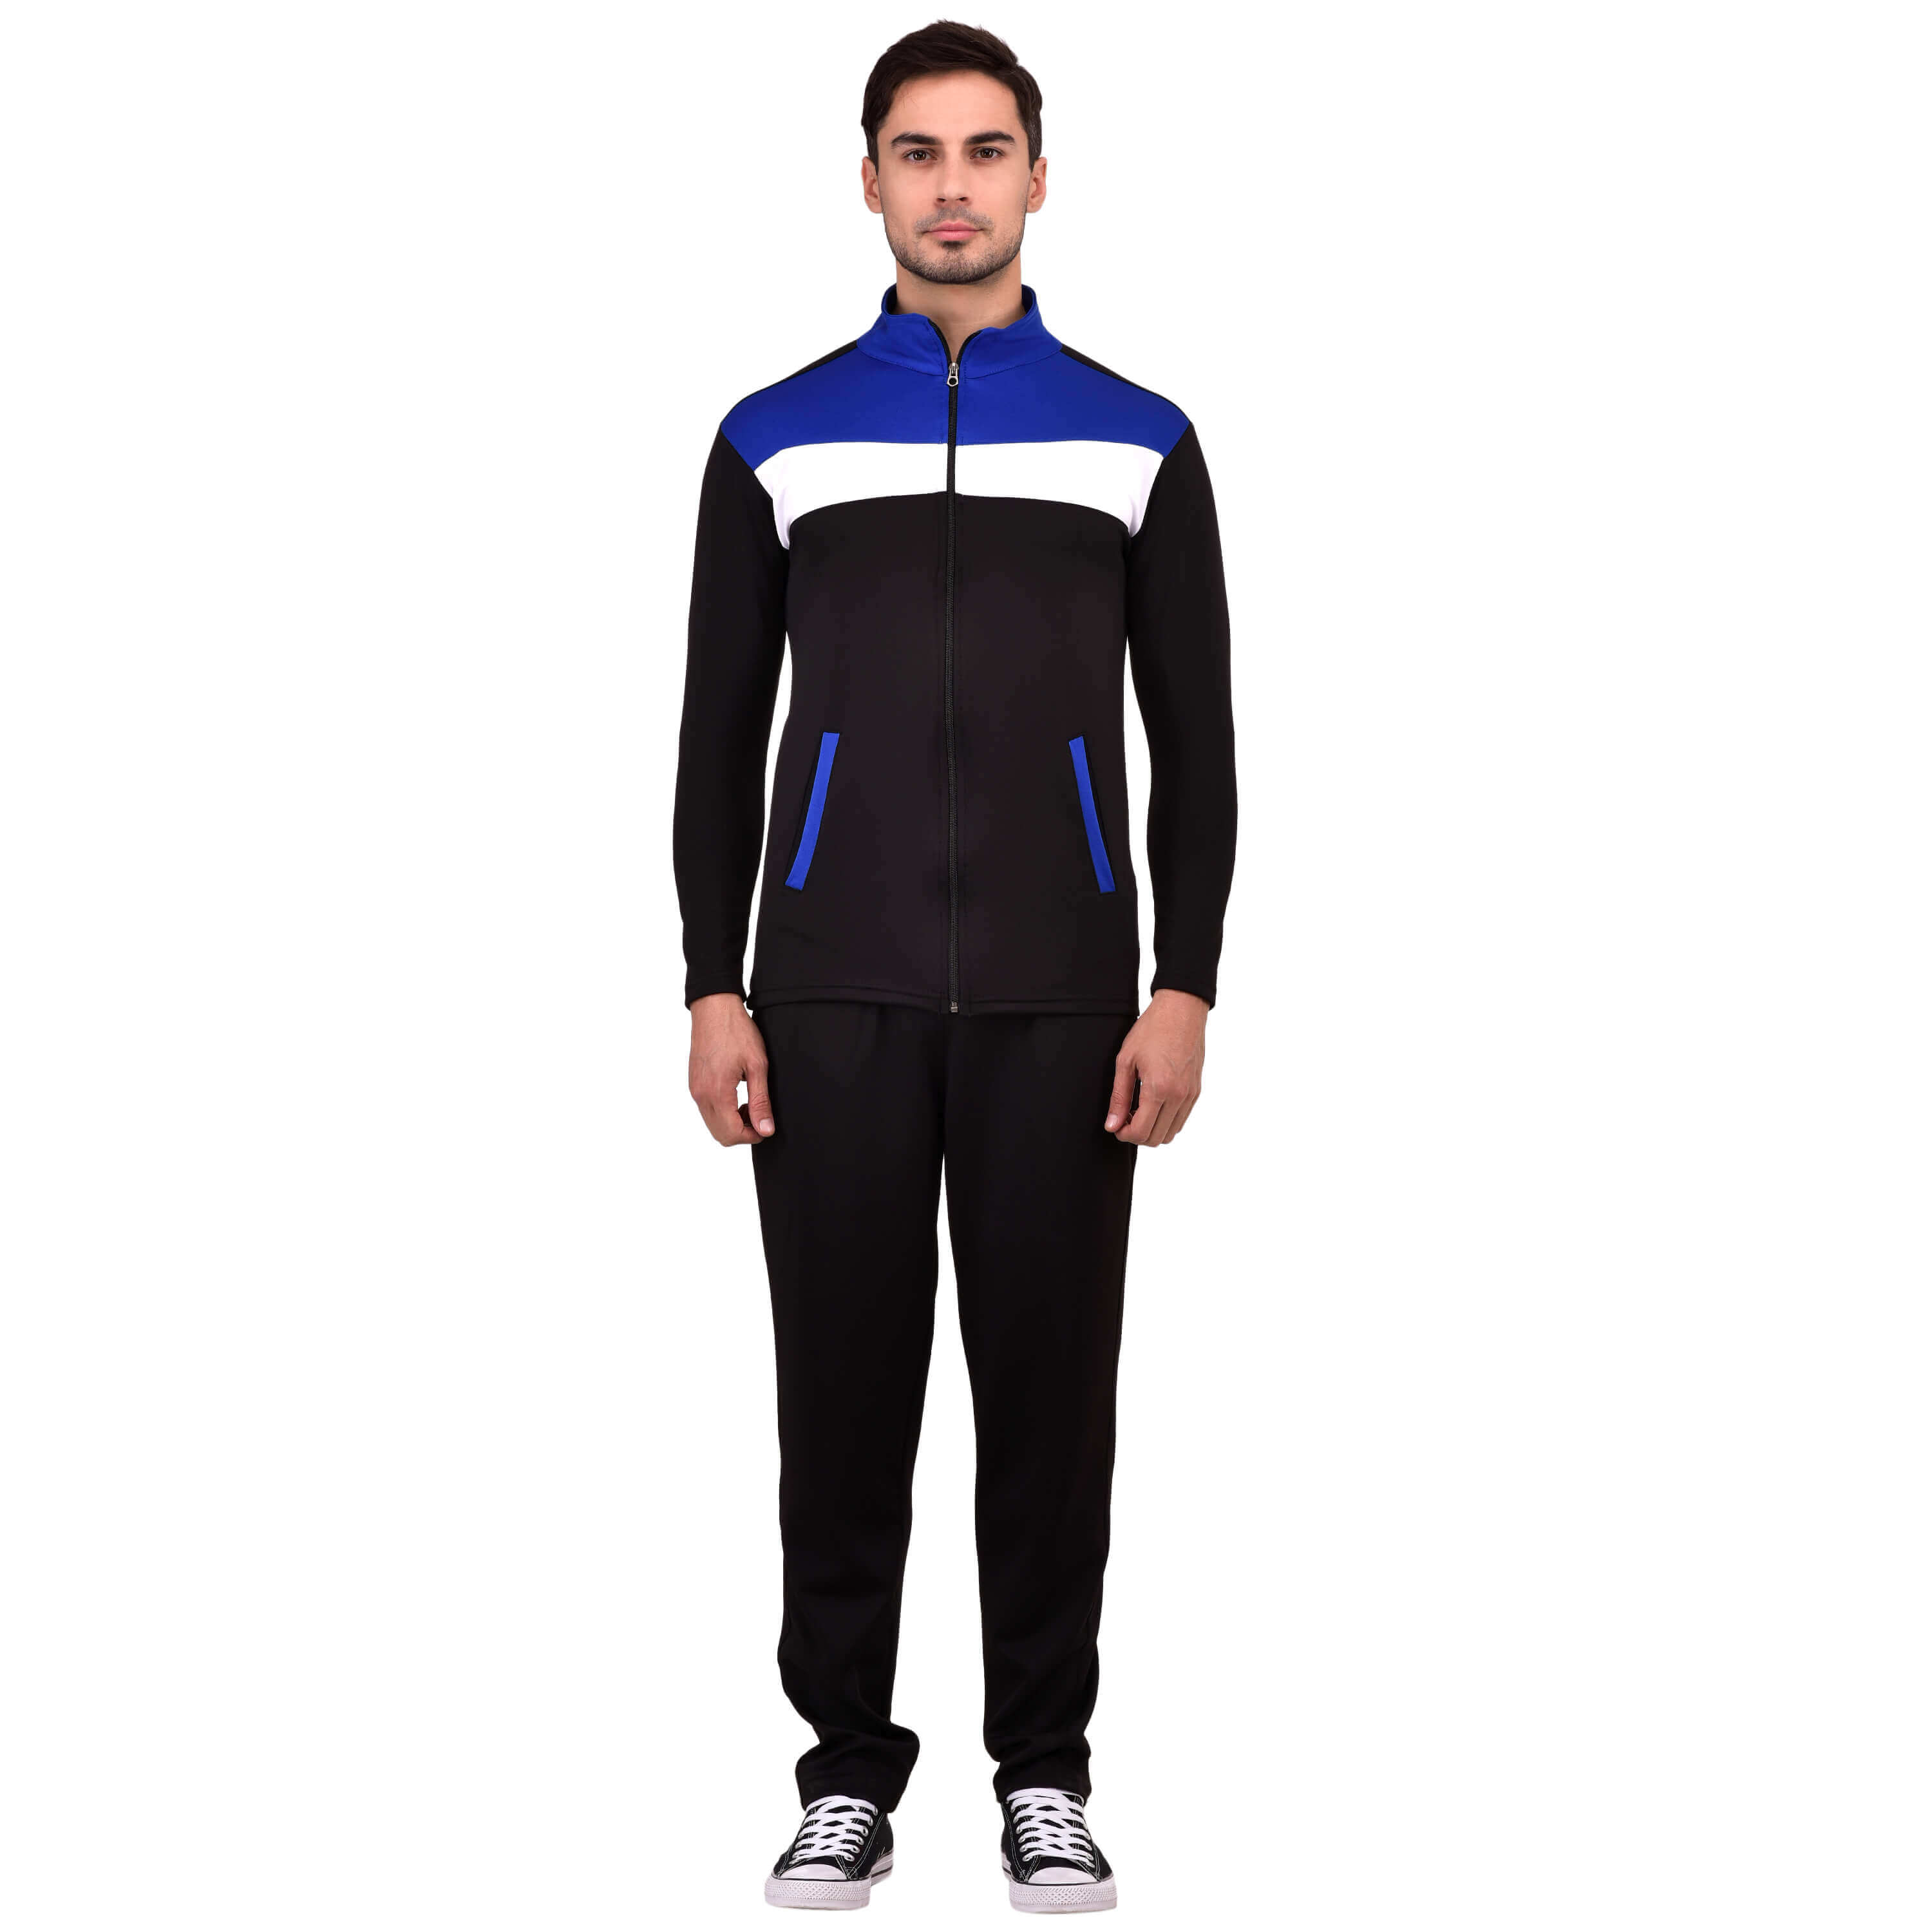 Black Tracksuit Manufacturers in Solapur